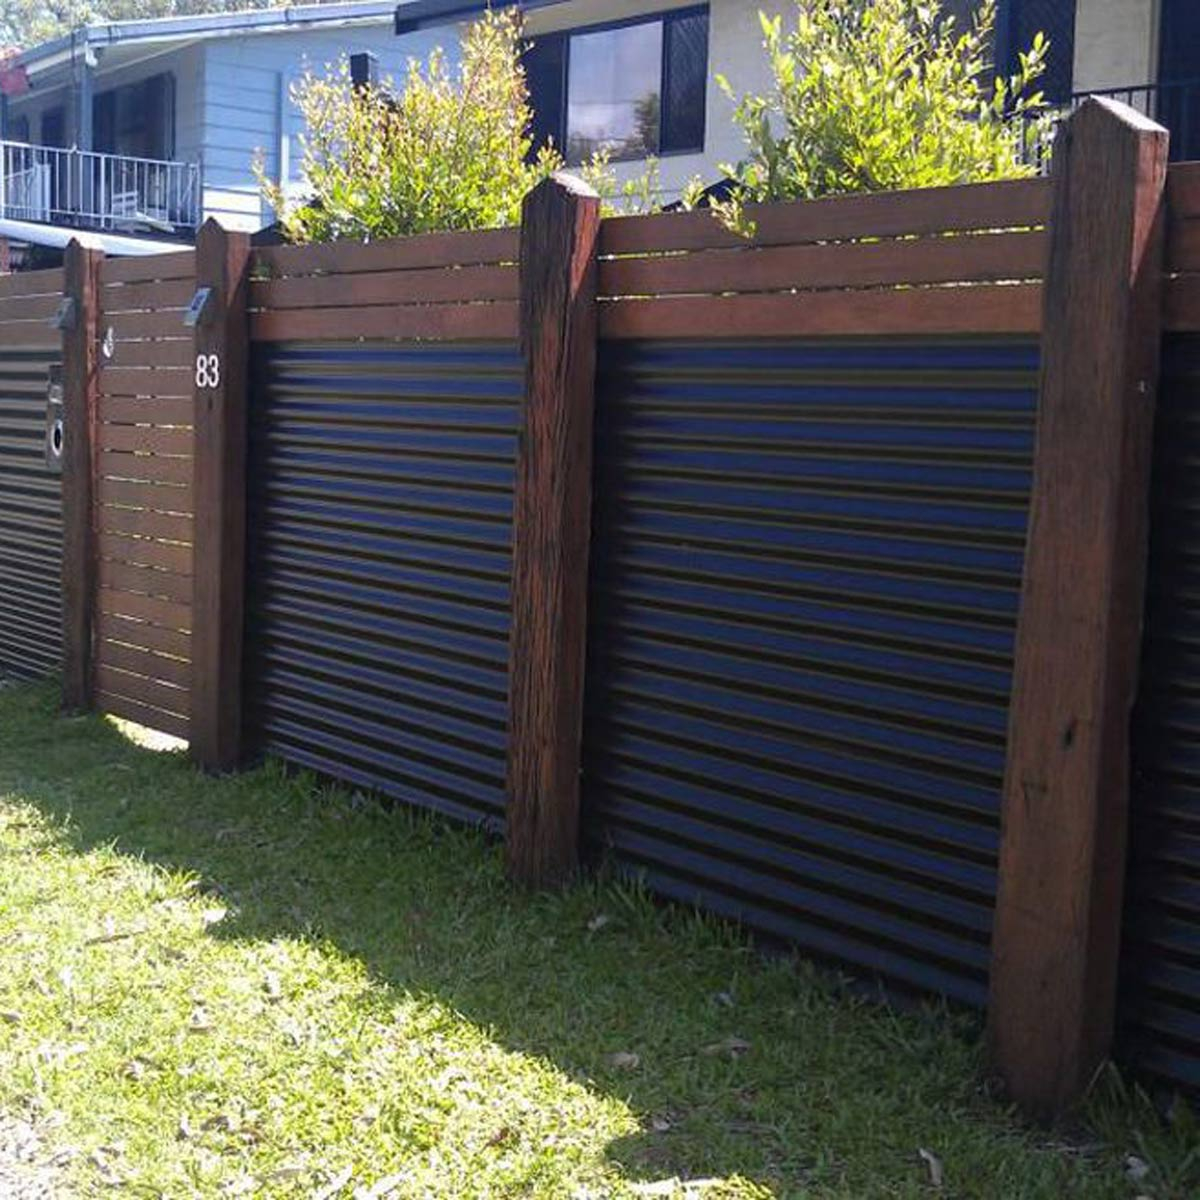 Yard Fencing 10 Modern Fence Ideas Family Handyman with 15 Smart Tricks of How to Improve Ideas For Backyard Fences